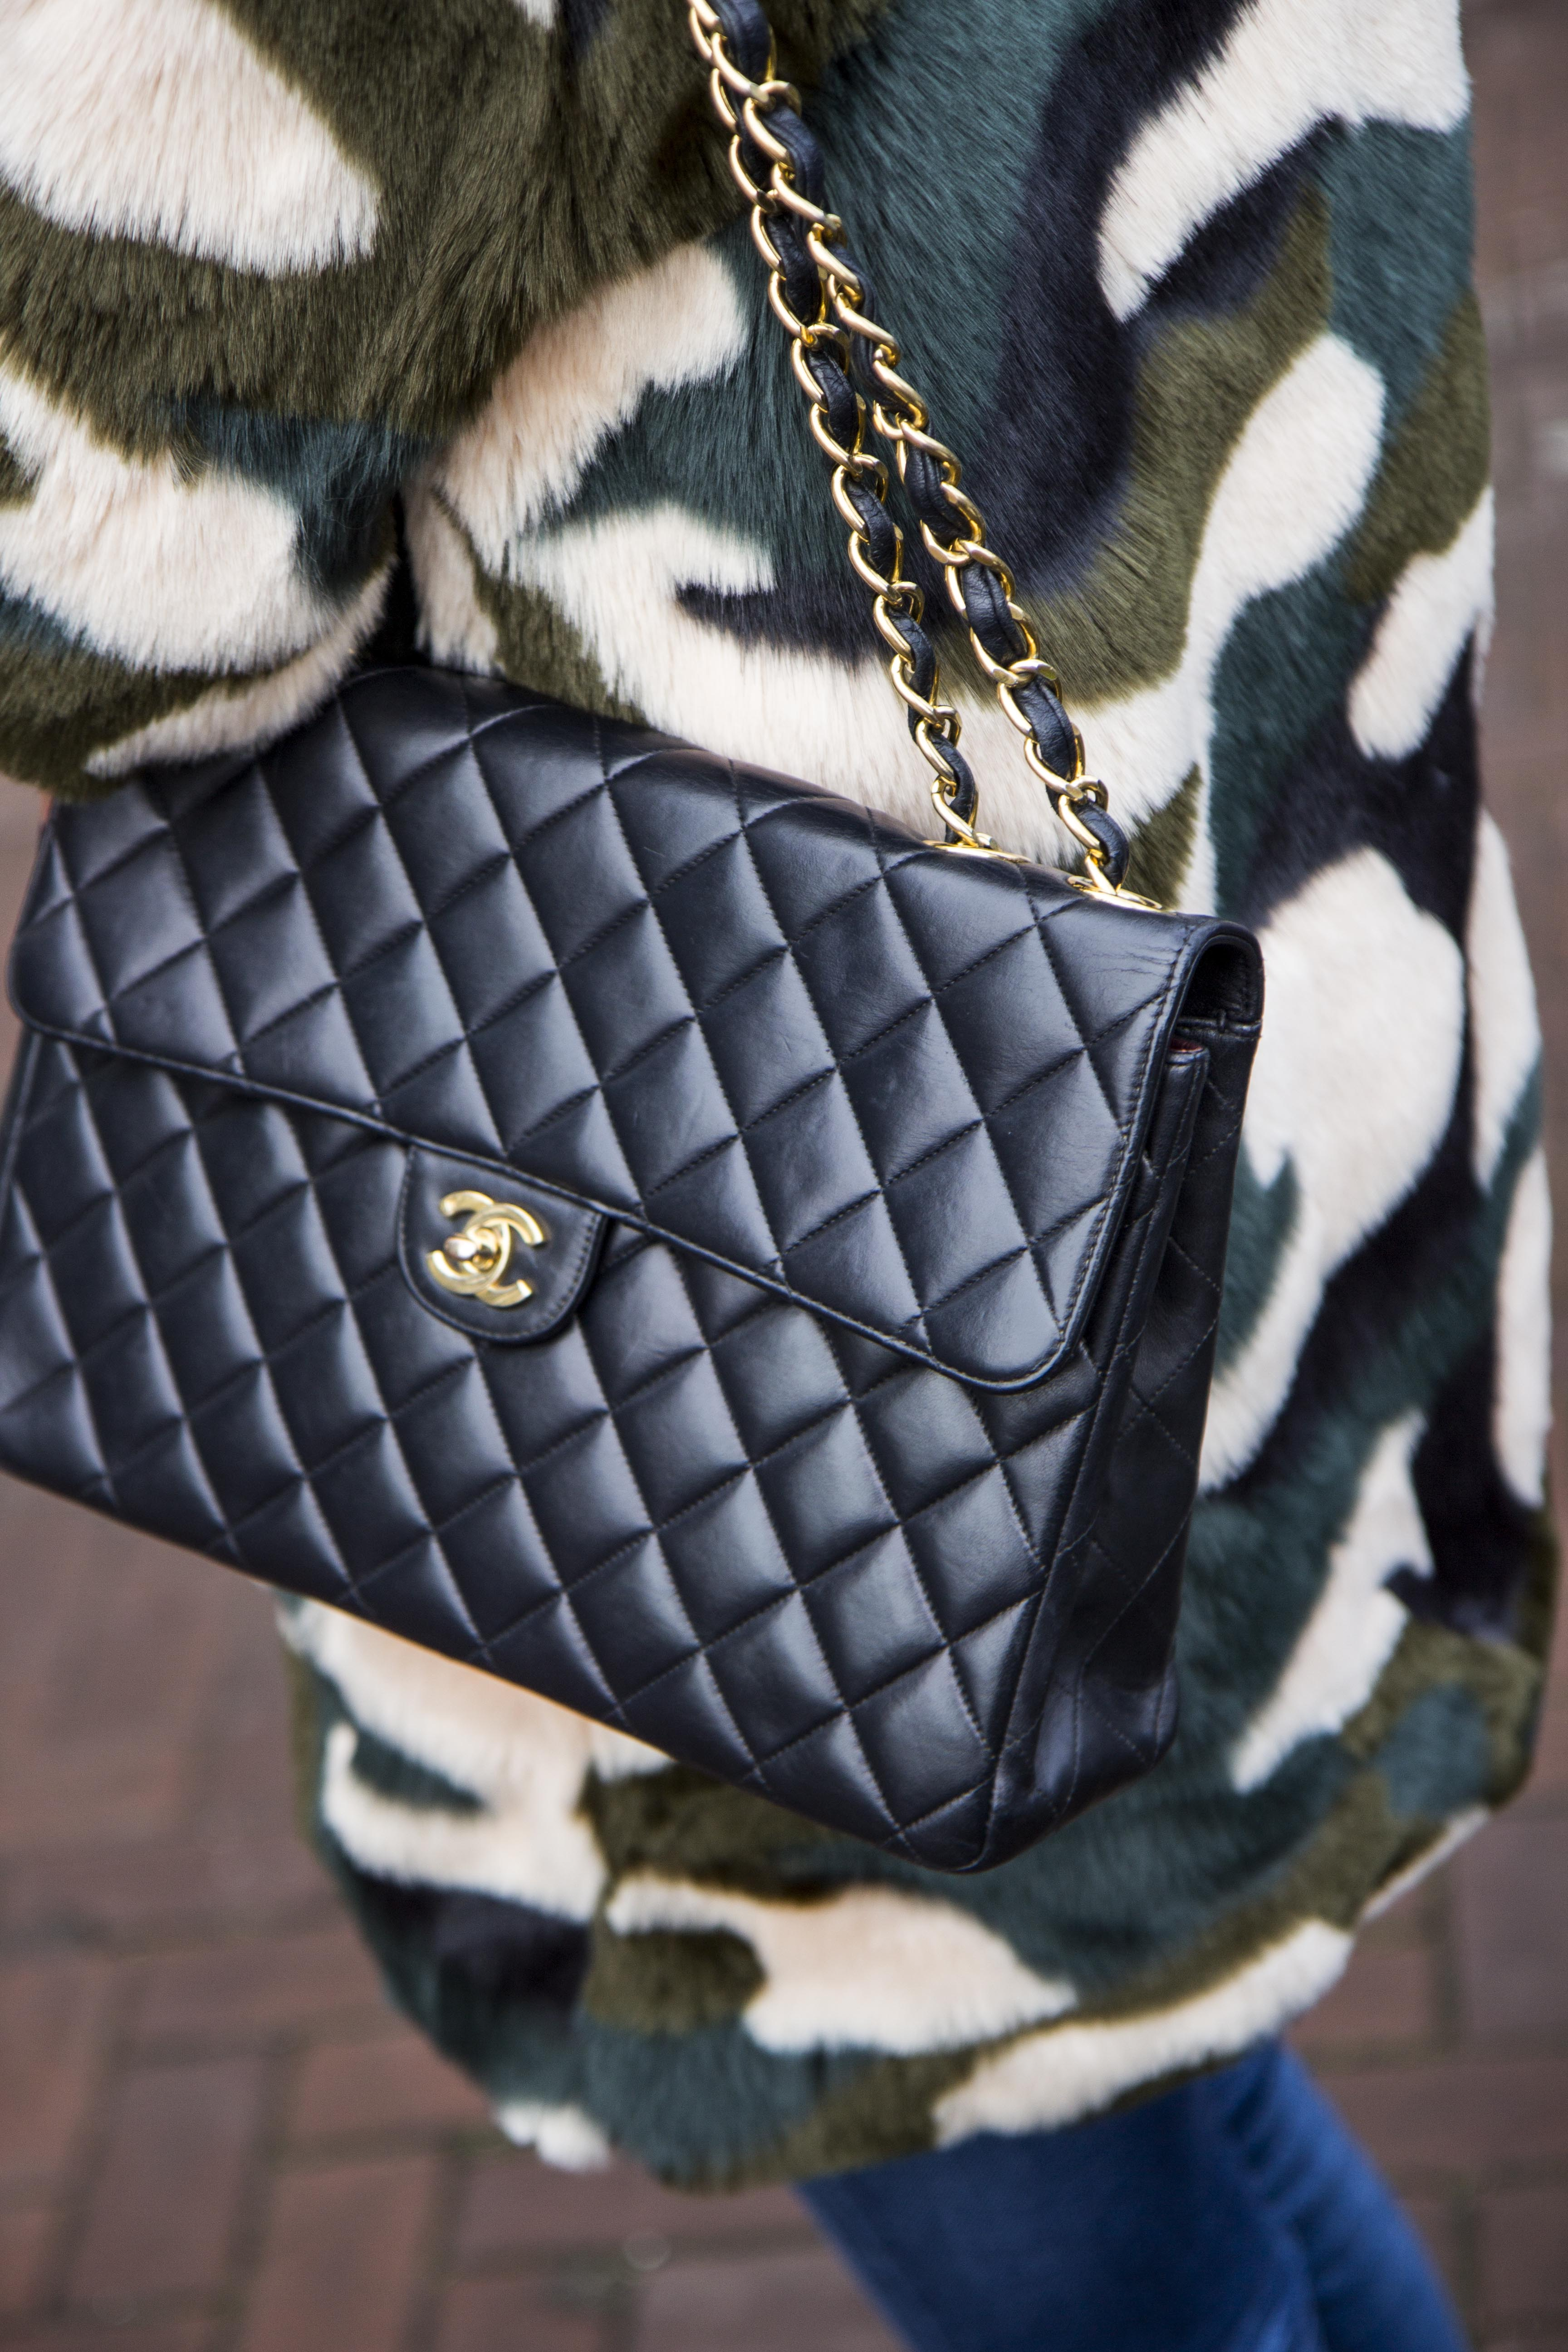 Bag at You - Chanel Bag